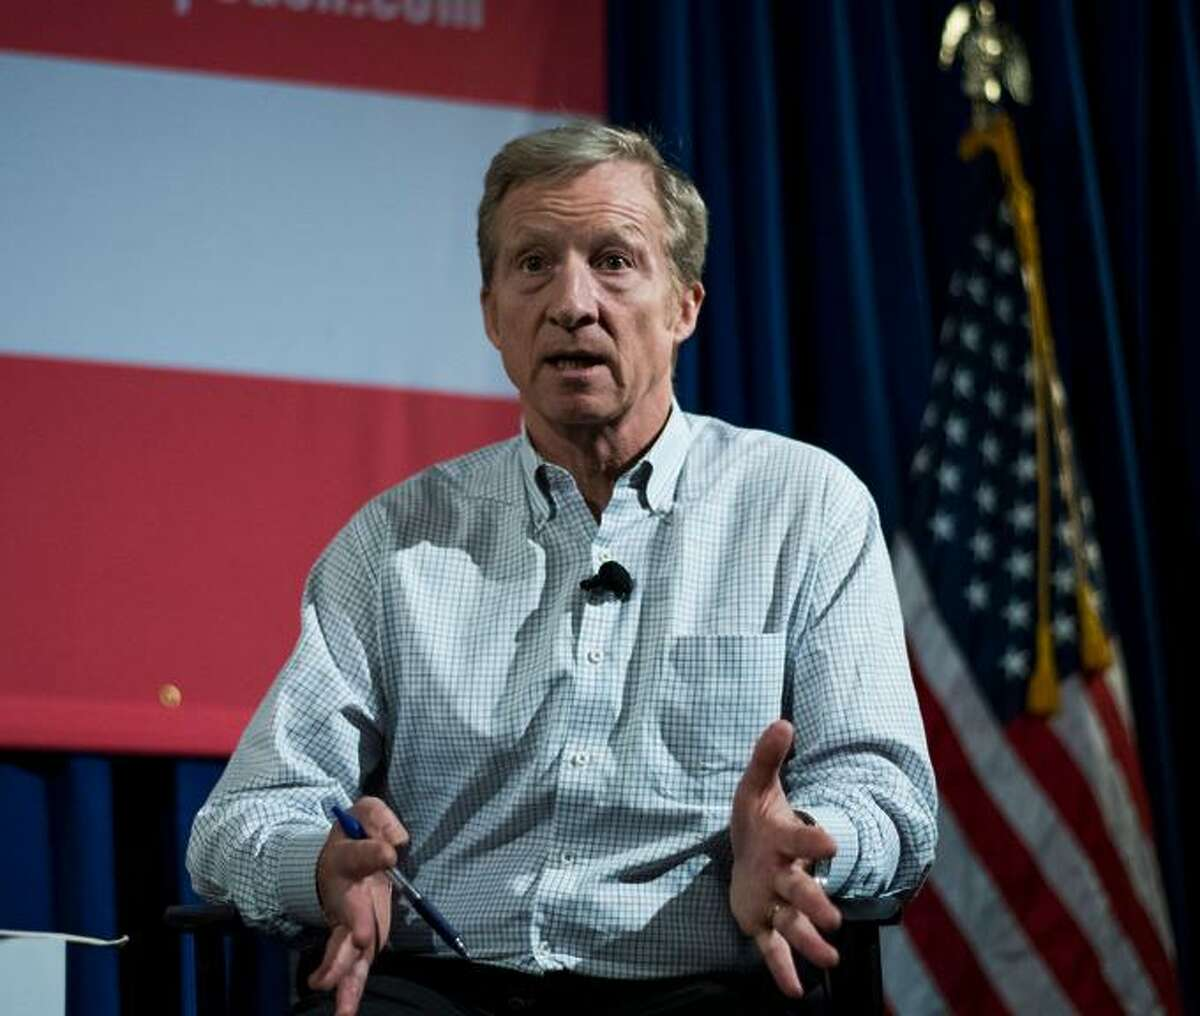 US environmental activist and Democrat Tom Steyercalled out his fellow Democrats as well as Republicans for allowing America to be corrupted at the state Democratic Party convention.